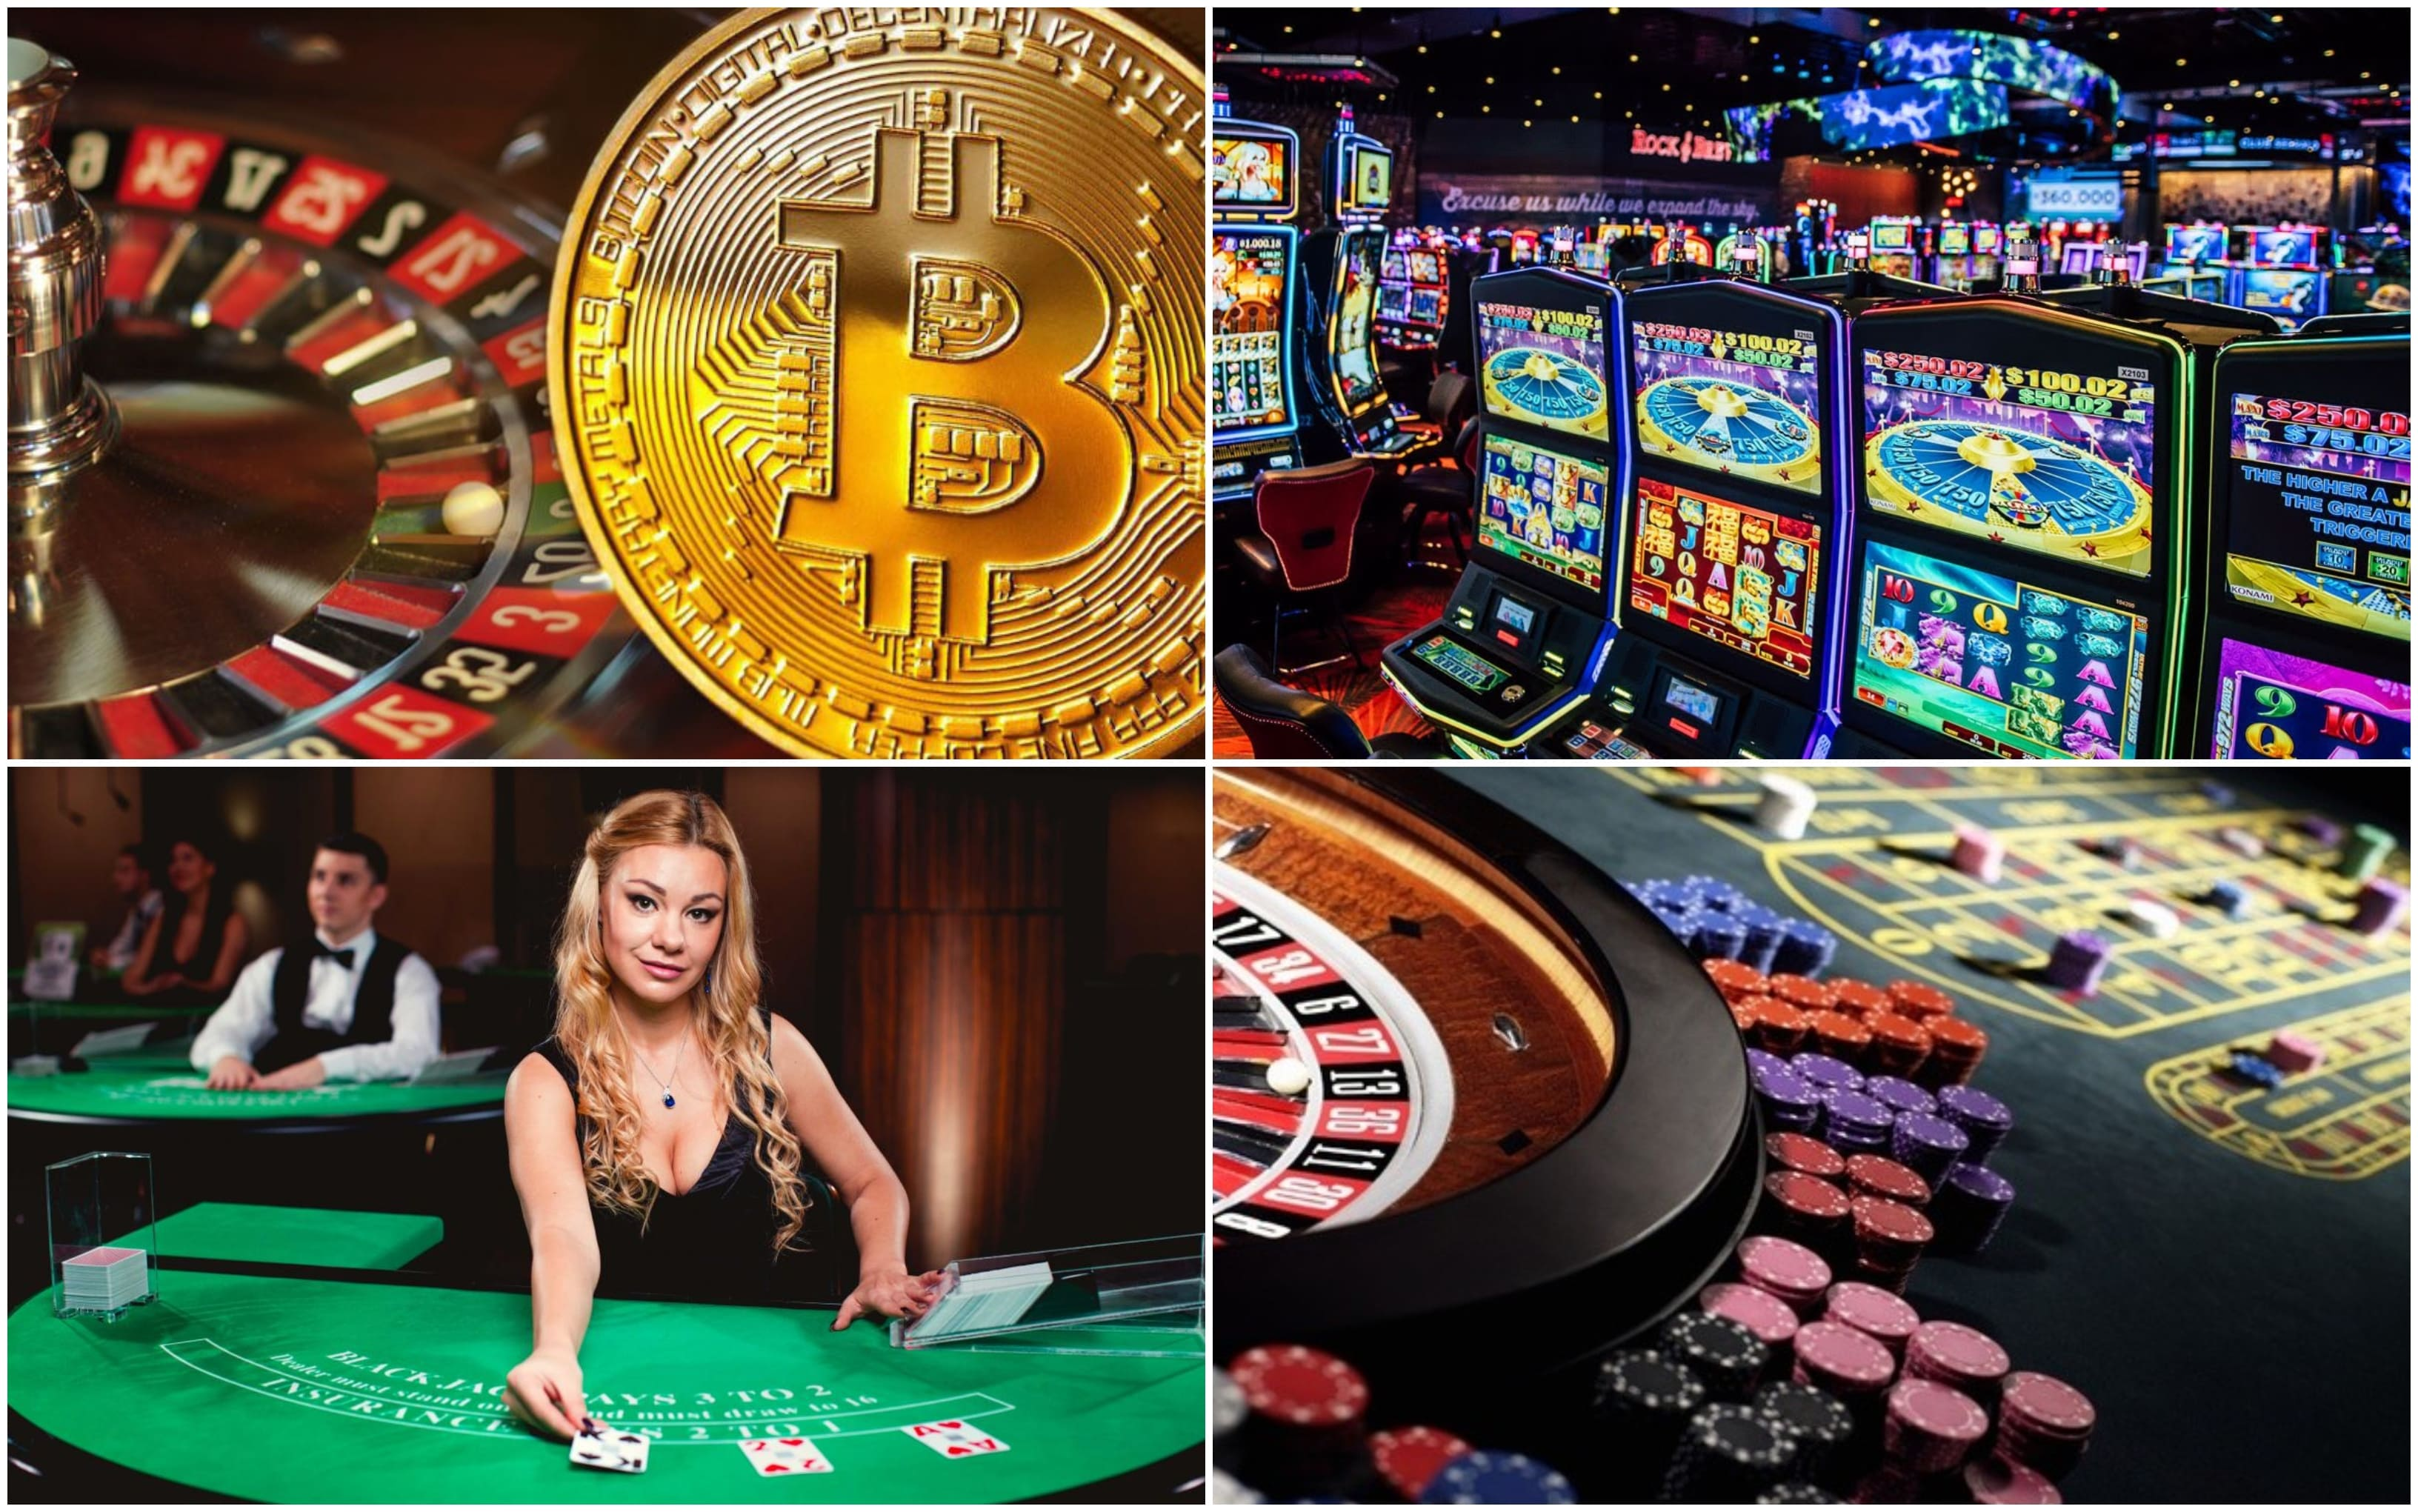 Types of Casino Games You Can Find Online and Offline